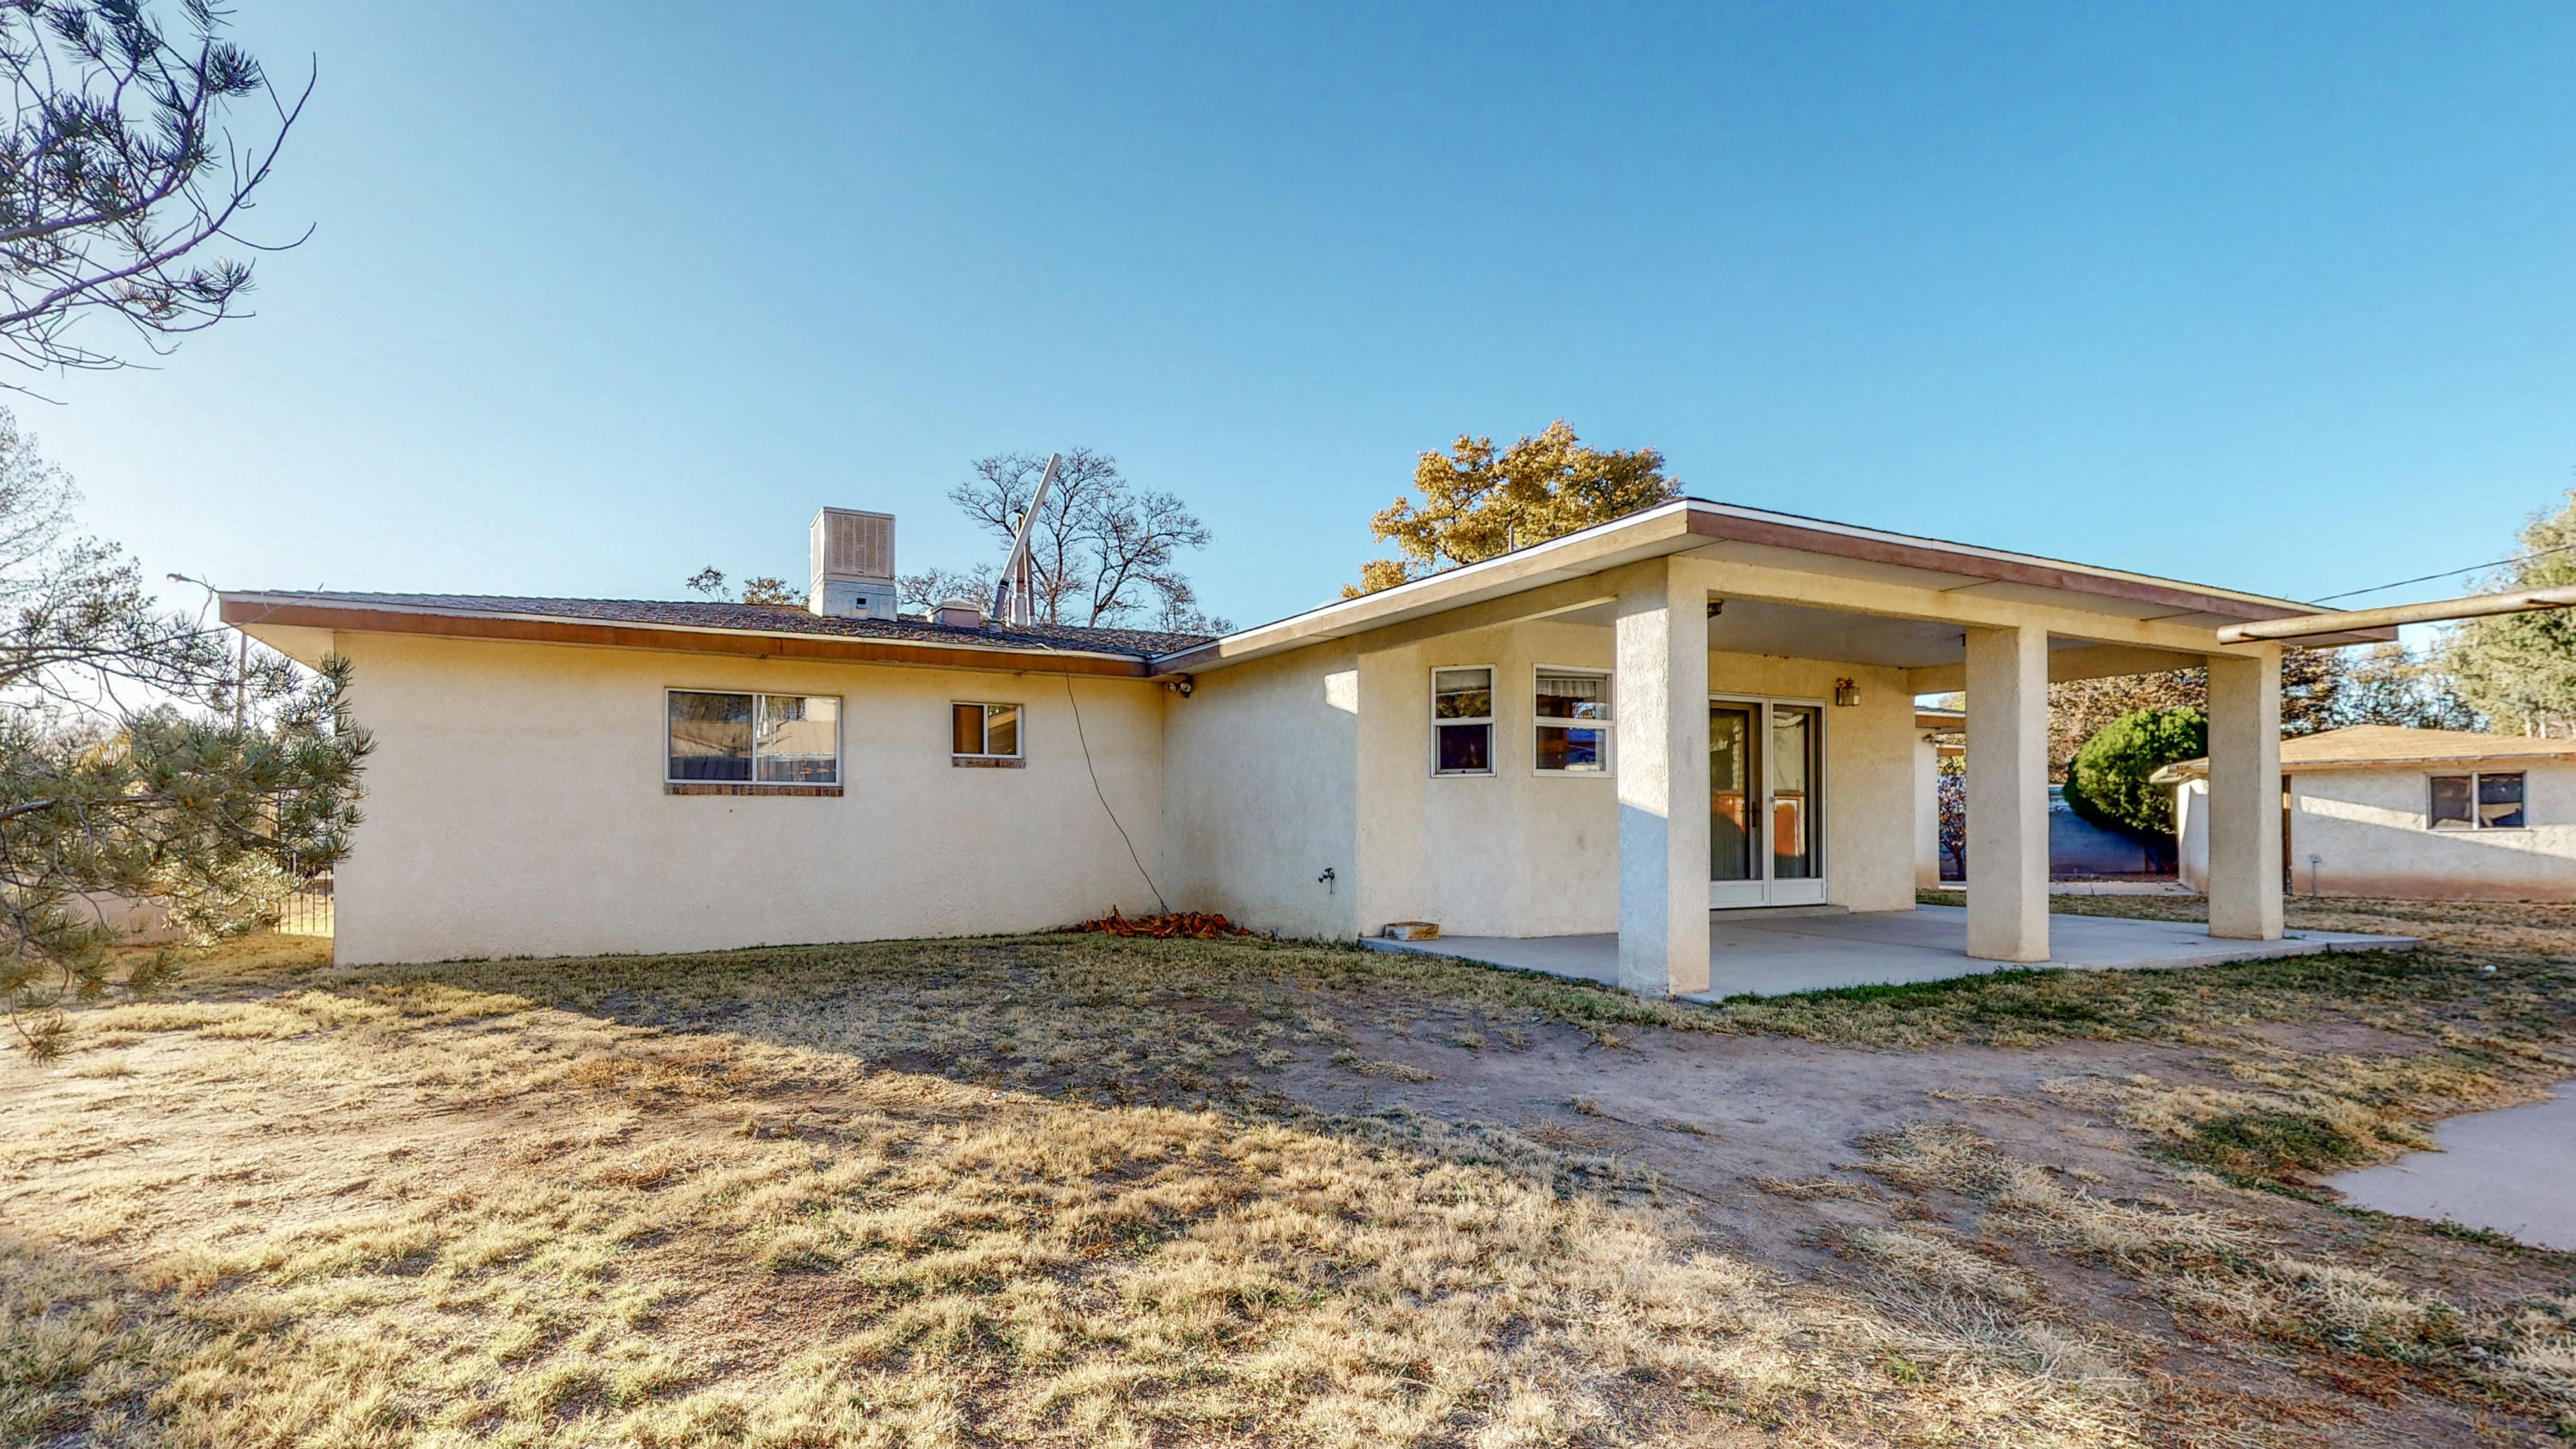 Corner lot with beautiful well-kept home in the heart of Adobe Acres. Boundless family living area, with large welcoming kitchen, and vast laundry room. Nicely groomed yard with lots of space to grow into.